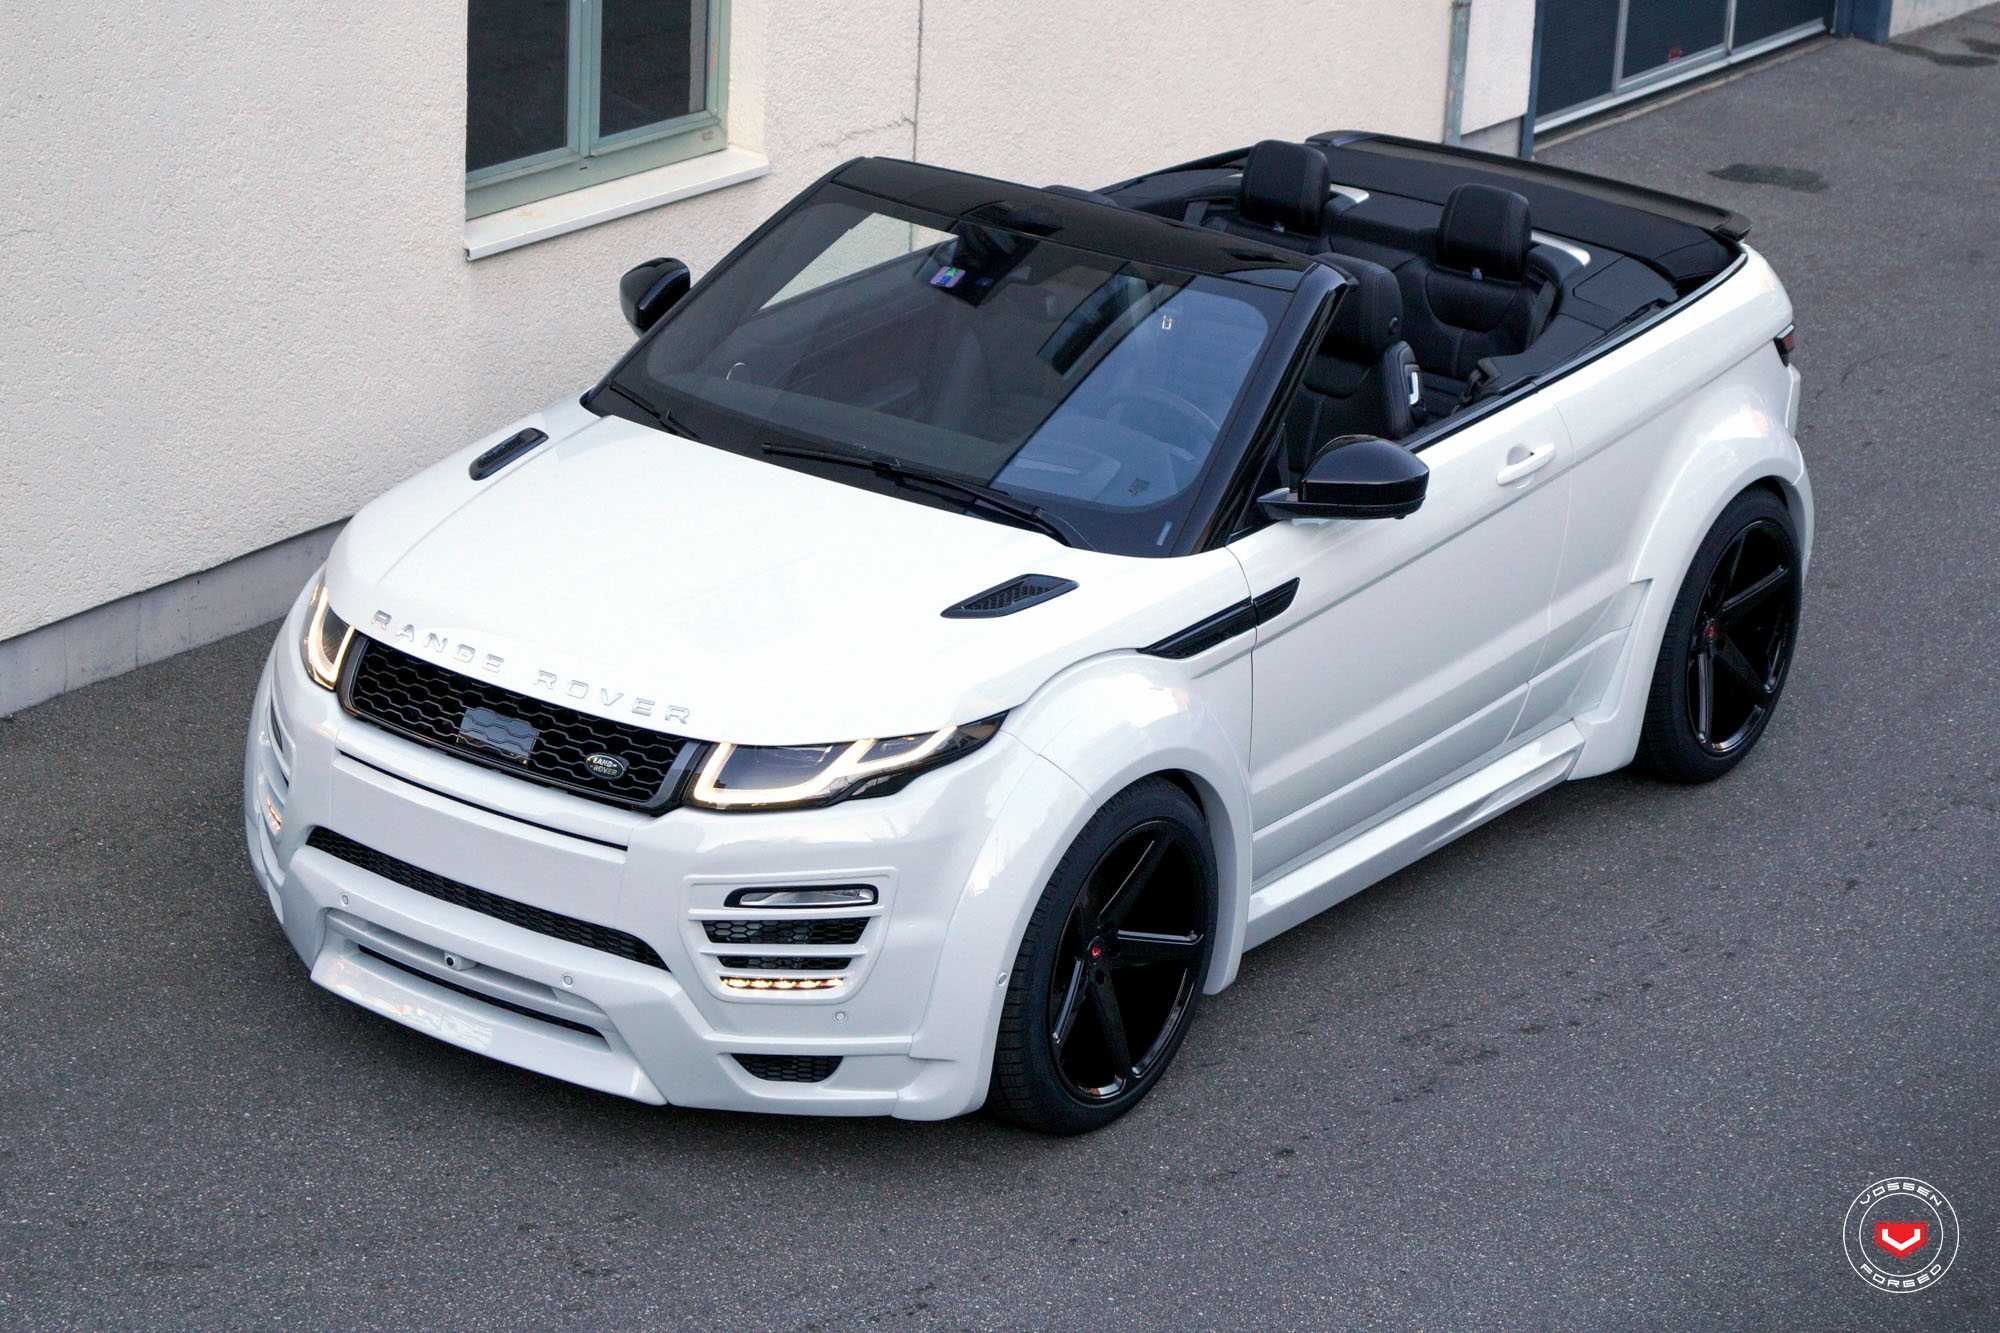 range rover evoque cabrio with widebody kit rides on vossen wheels autoevolution. Black Bedroom Furniture Sets. Home Design Ideas